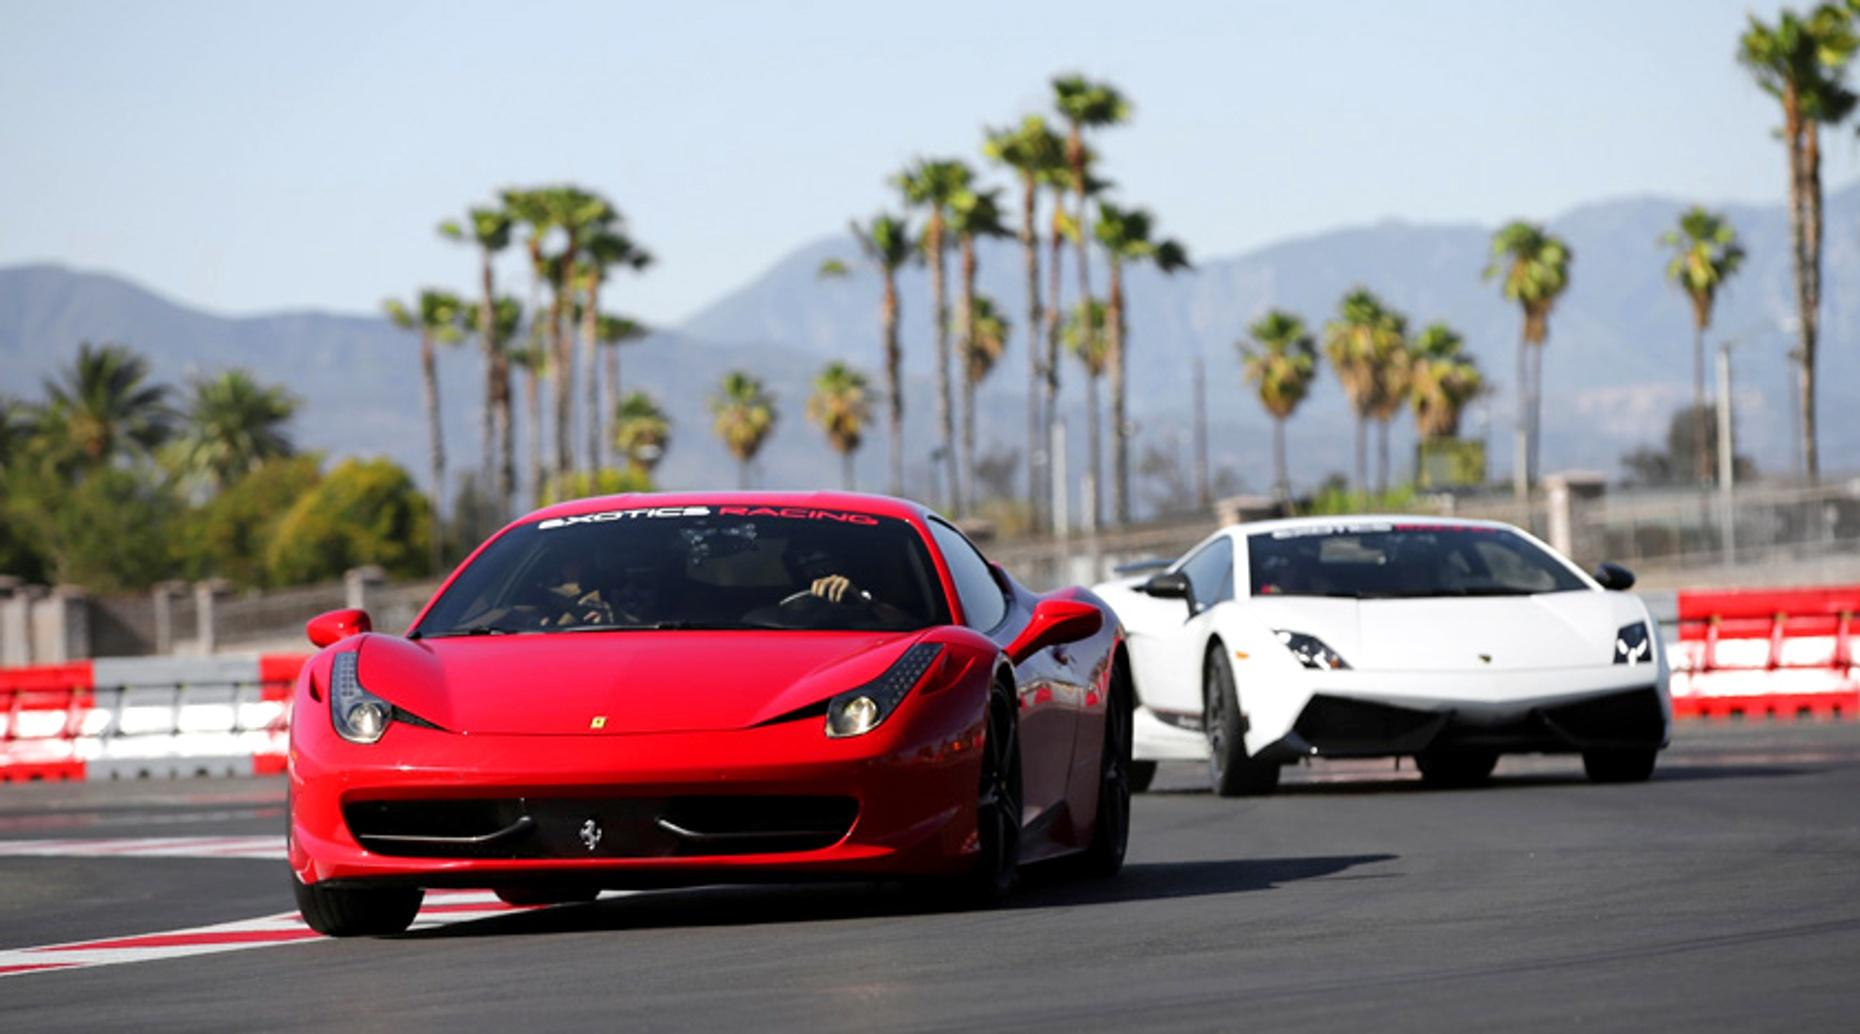 Los Angeles Race Car Driver Experience with a Lamborghini